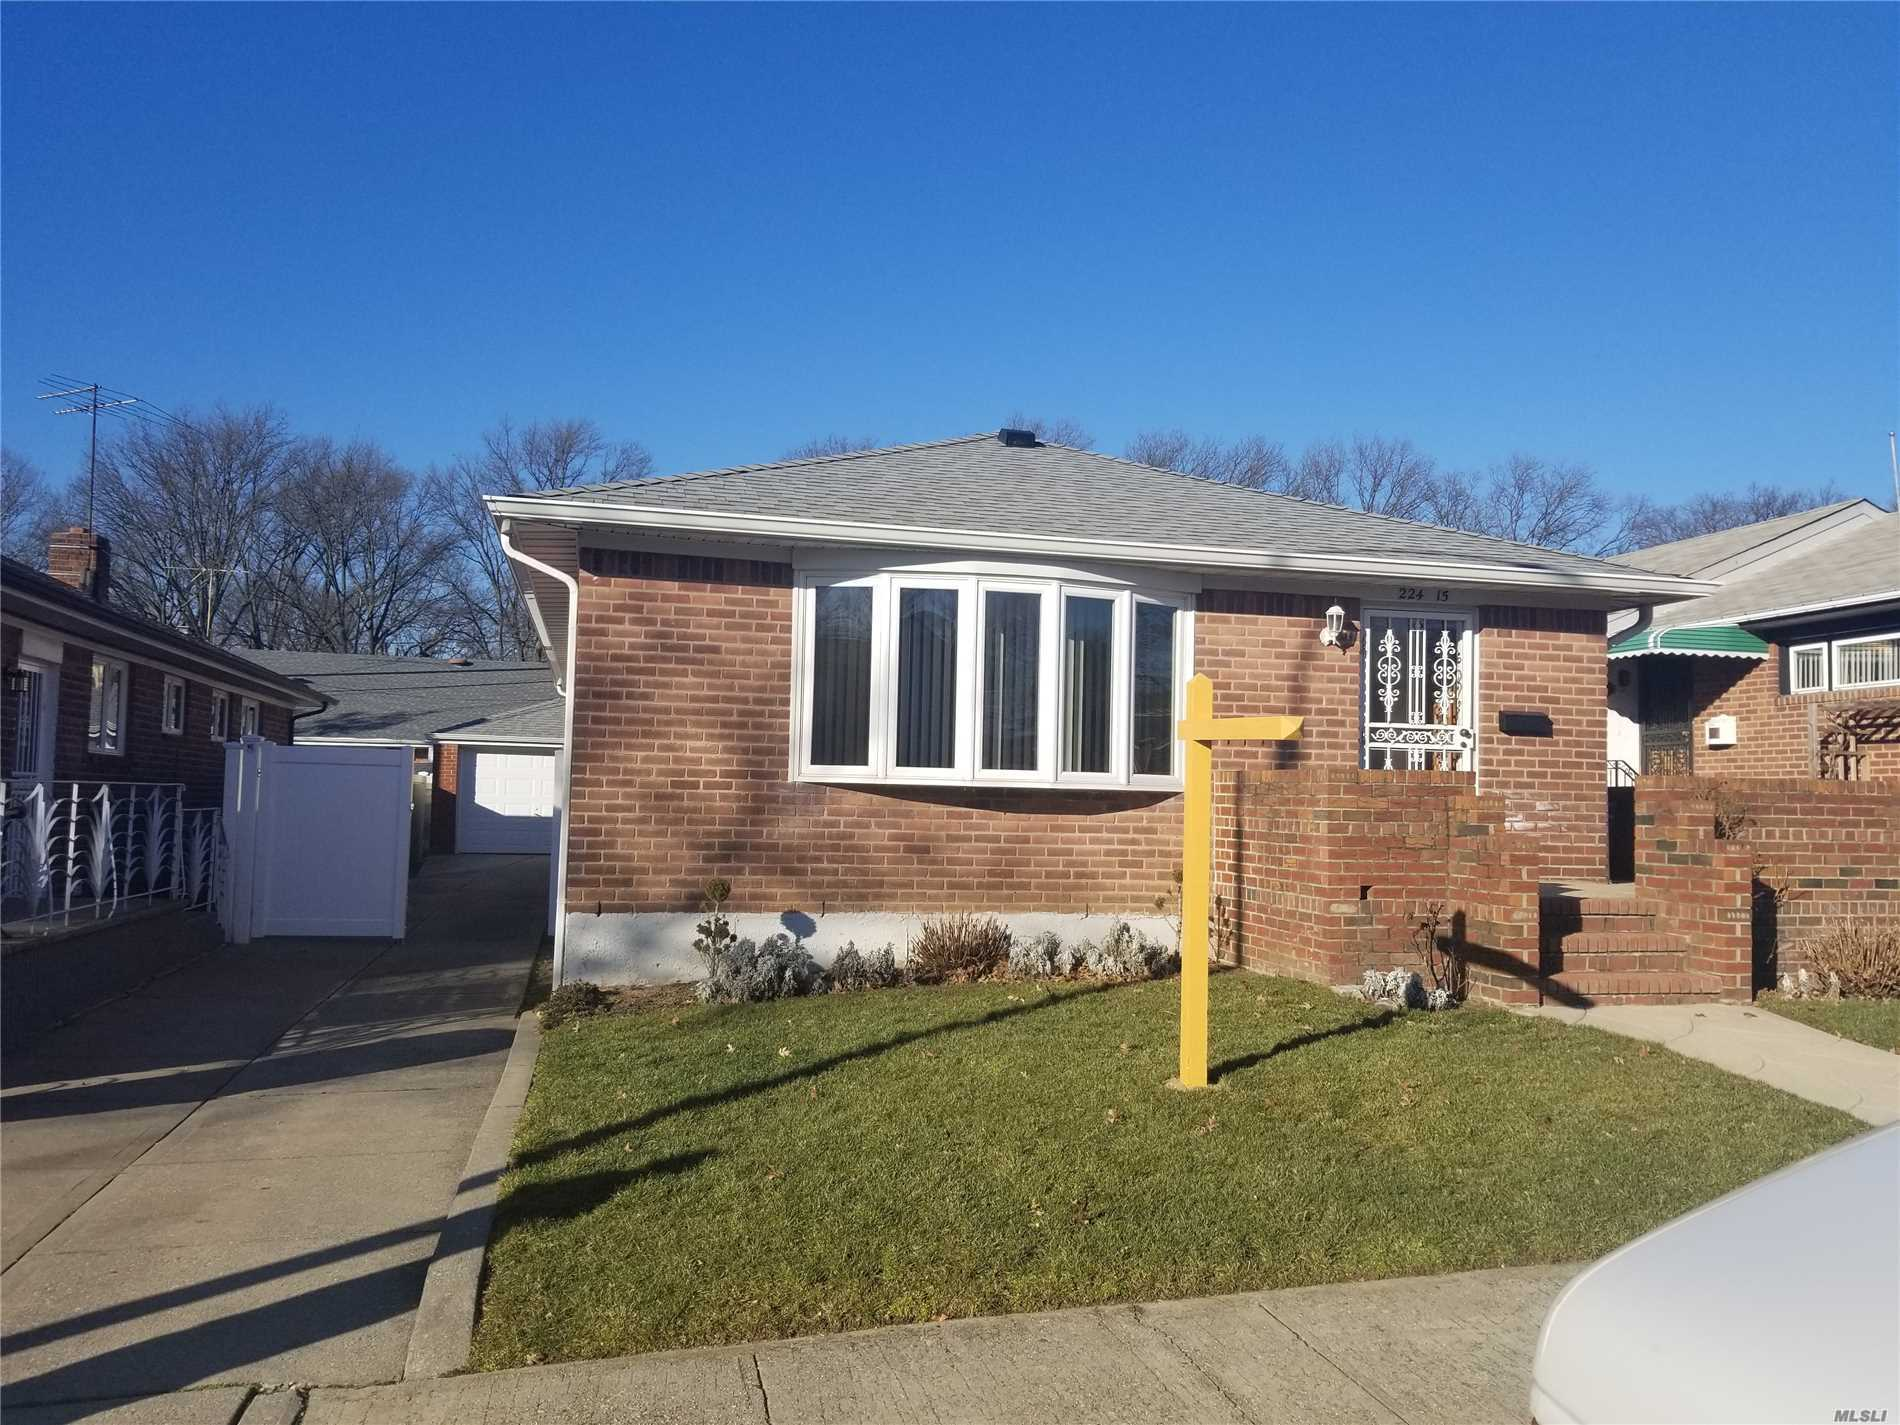 Great Neighborhood In Oakland Gardens, South Faced Whole Brick Ranch House On A 41X100 Lot, Middle Of The Block, Nice Hardwood Floor, Master Bathroom Is Under Whole Renovation, Detached Garage, Nice Backyard, Cac & Central Heating, Unfinished Basement, You Can Make Great Space For Family Whatever You Want To, Separate Entrance To Basement, Near To Alley Pond Park Can Bbq, Jogging, Walk Dog, Best School Dist. #26, P.S.#188, Qm Bus#6, Q27 To Flushing Main St, Near To Shopping, This Is A Must See!